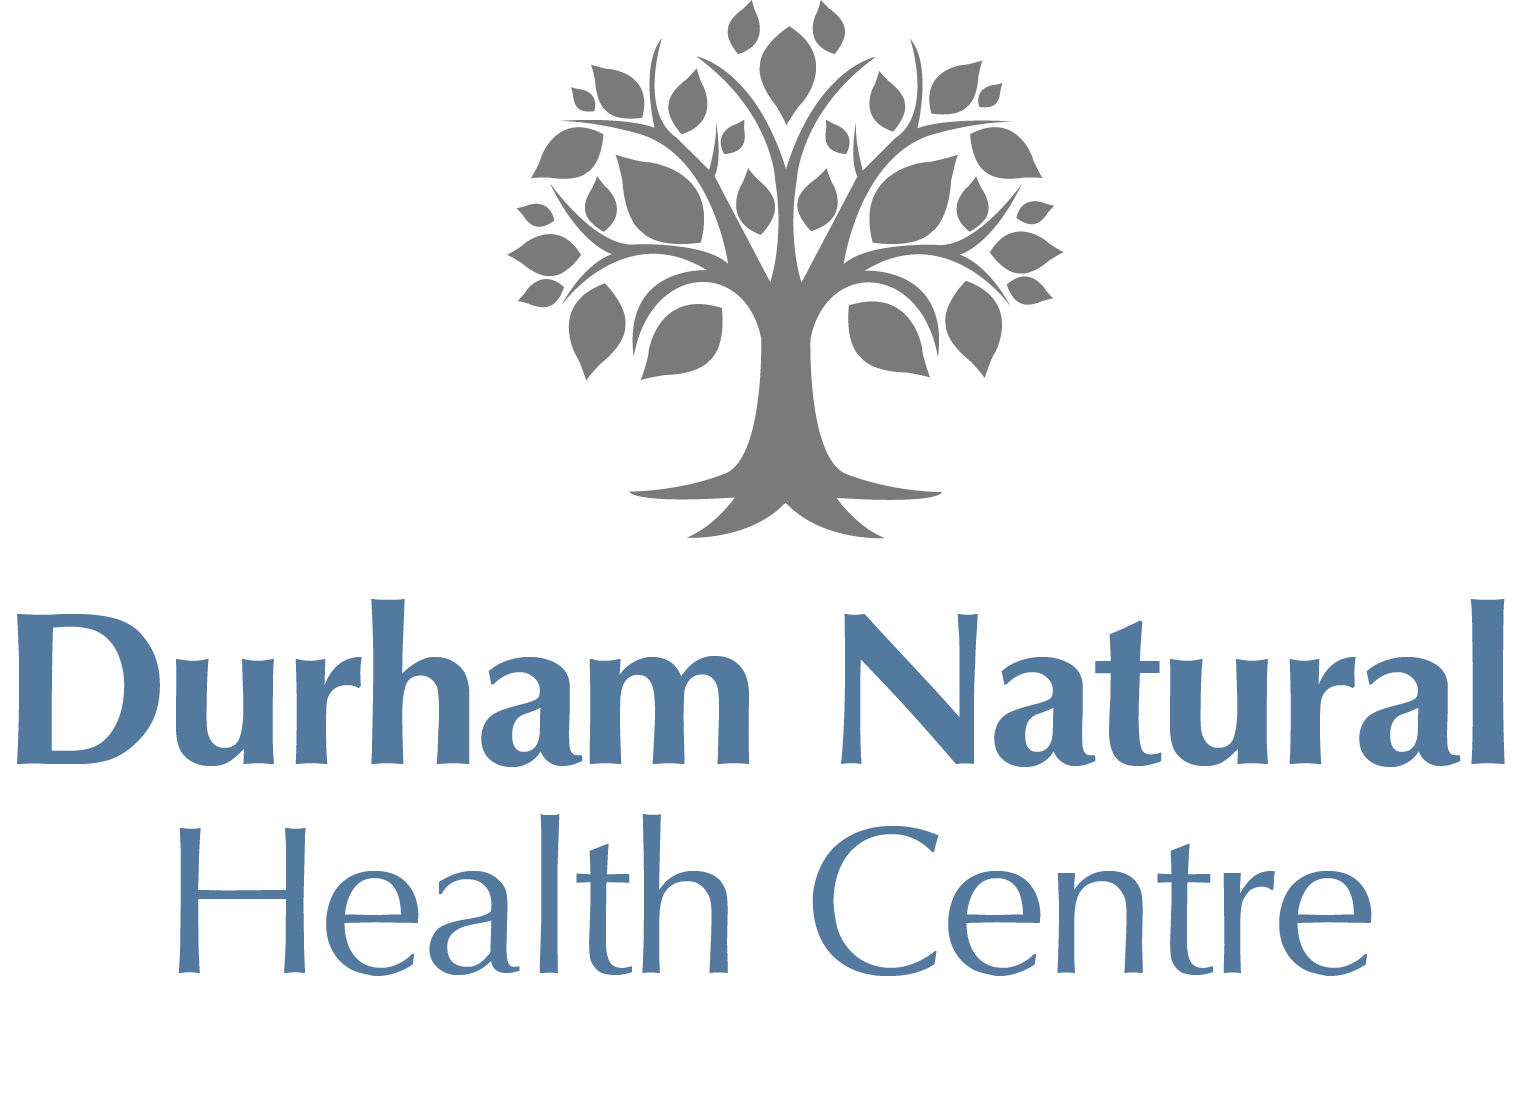 Durham Natural Health Clinic